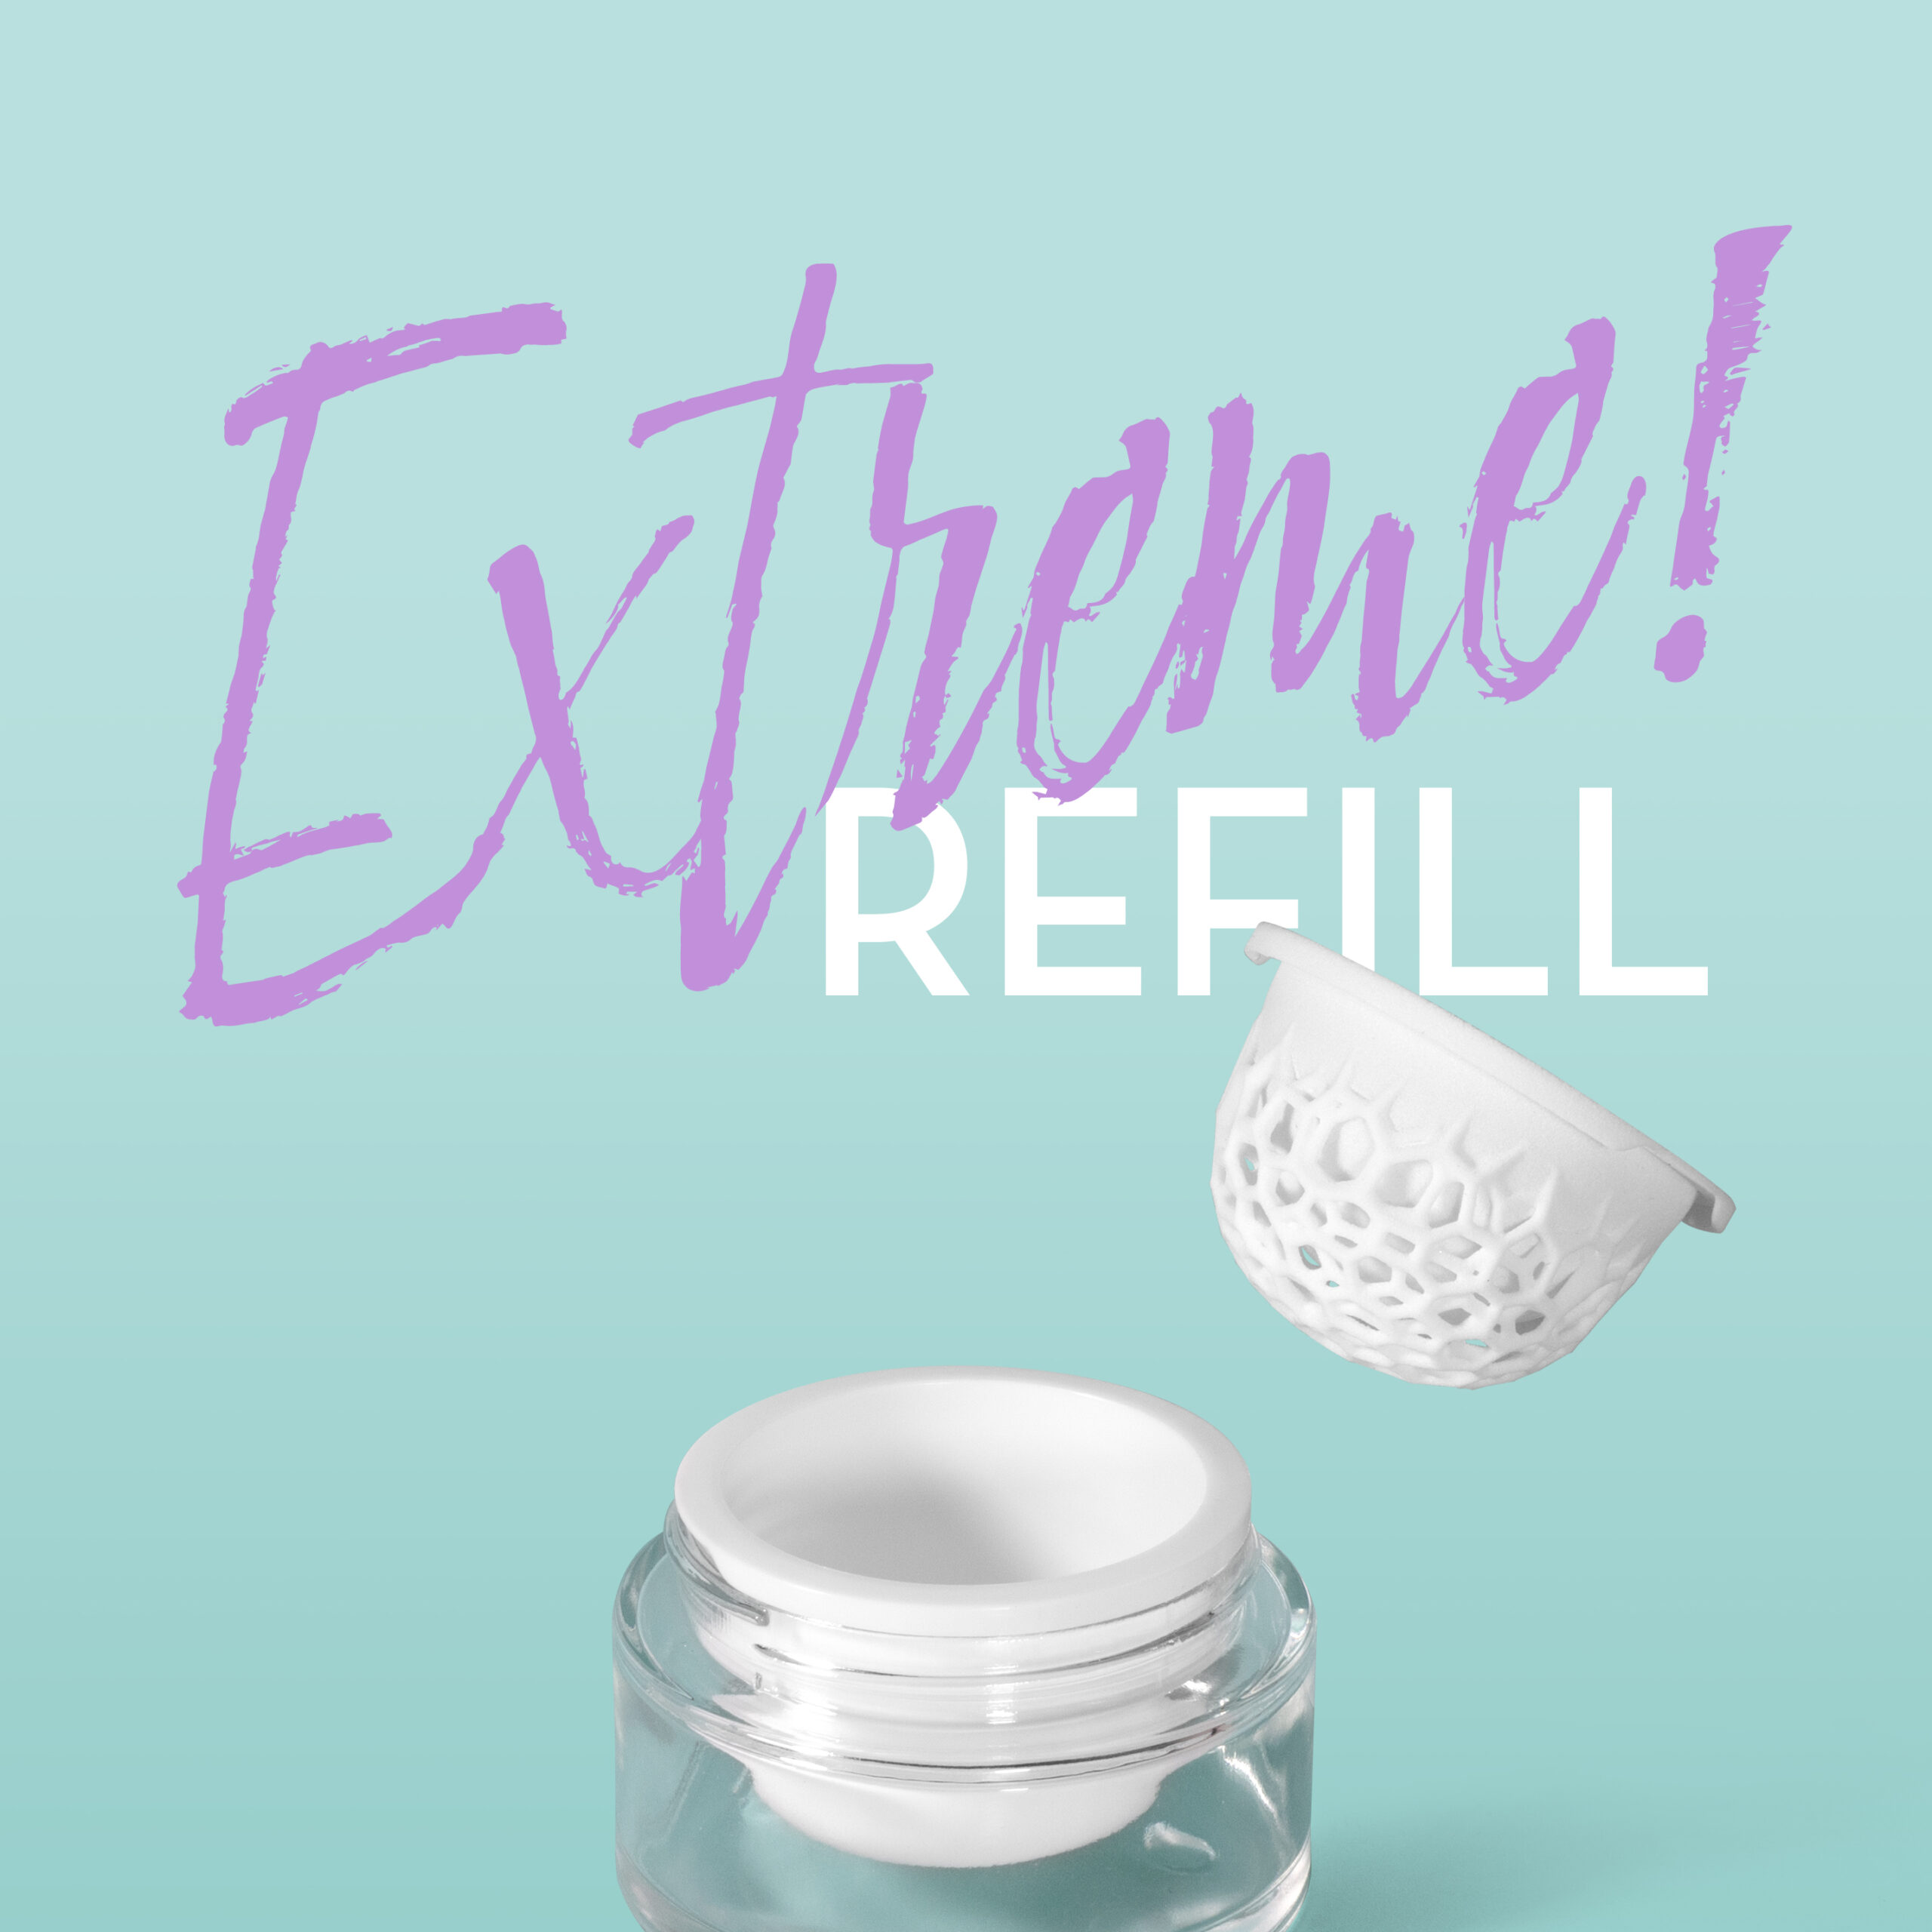 Extreme refill options